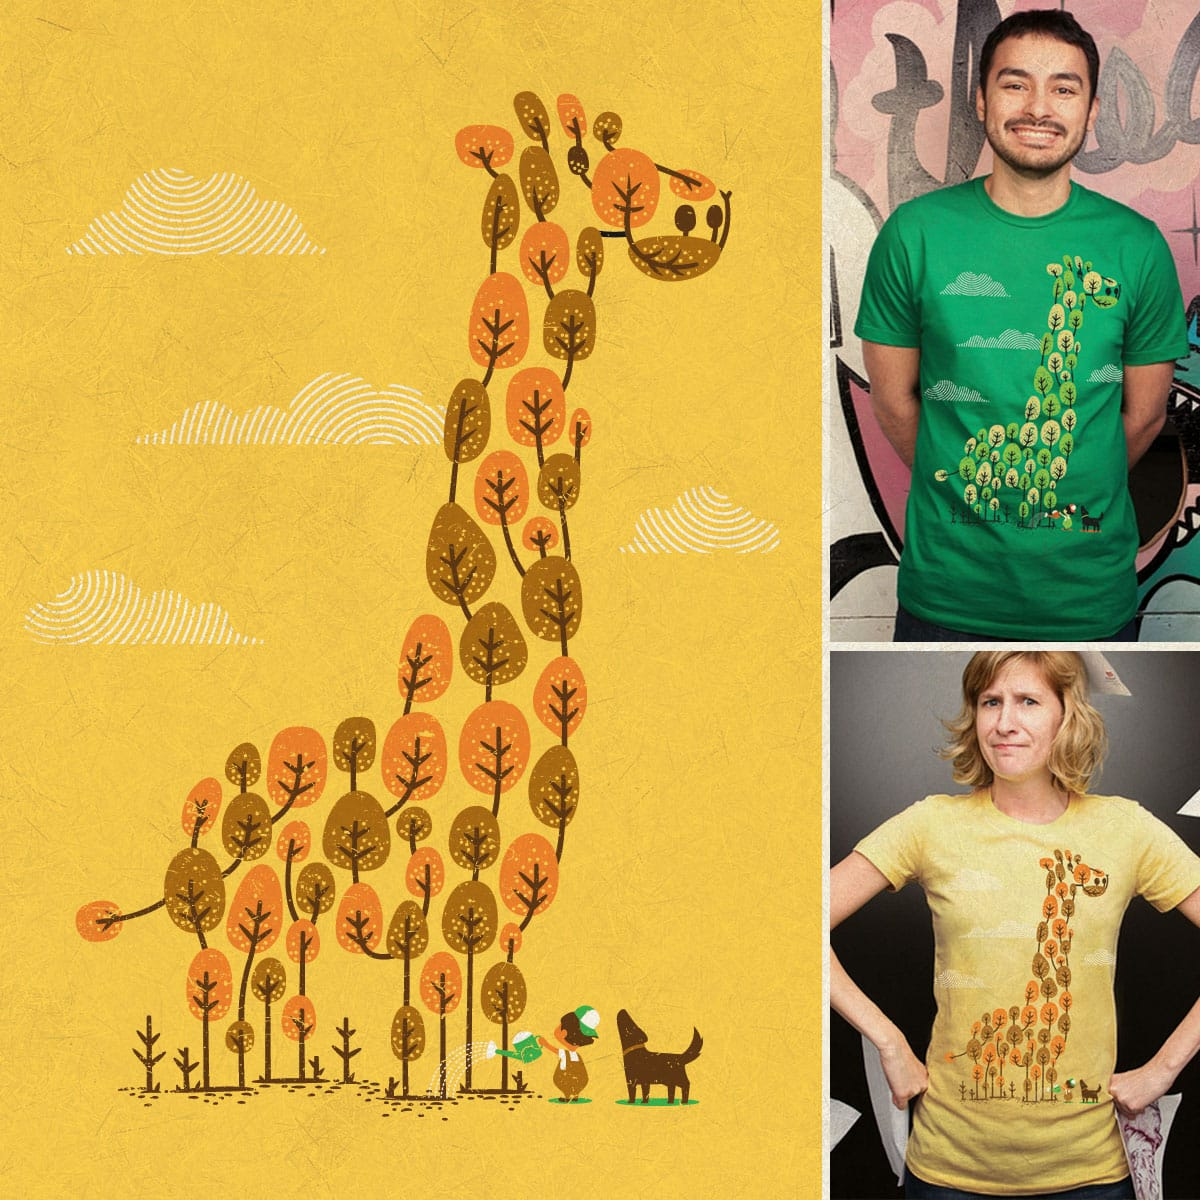 How Tall (High) Can You Grow by BubuSam on Threadless